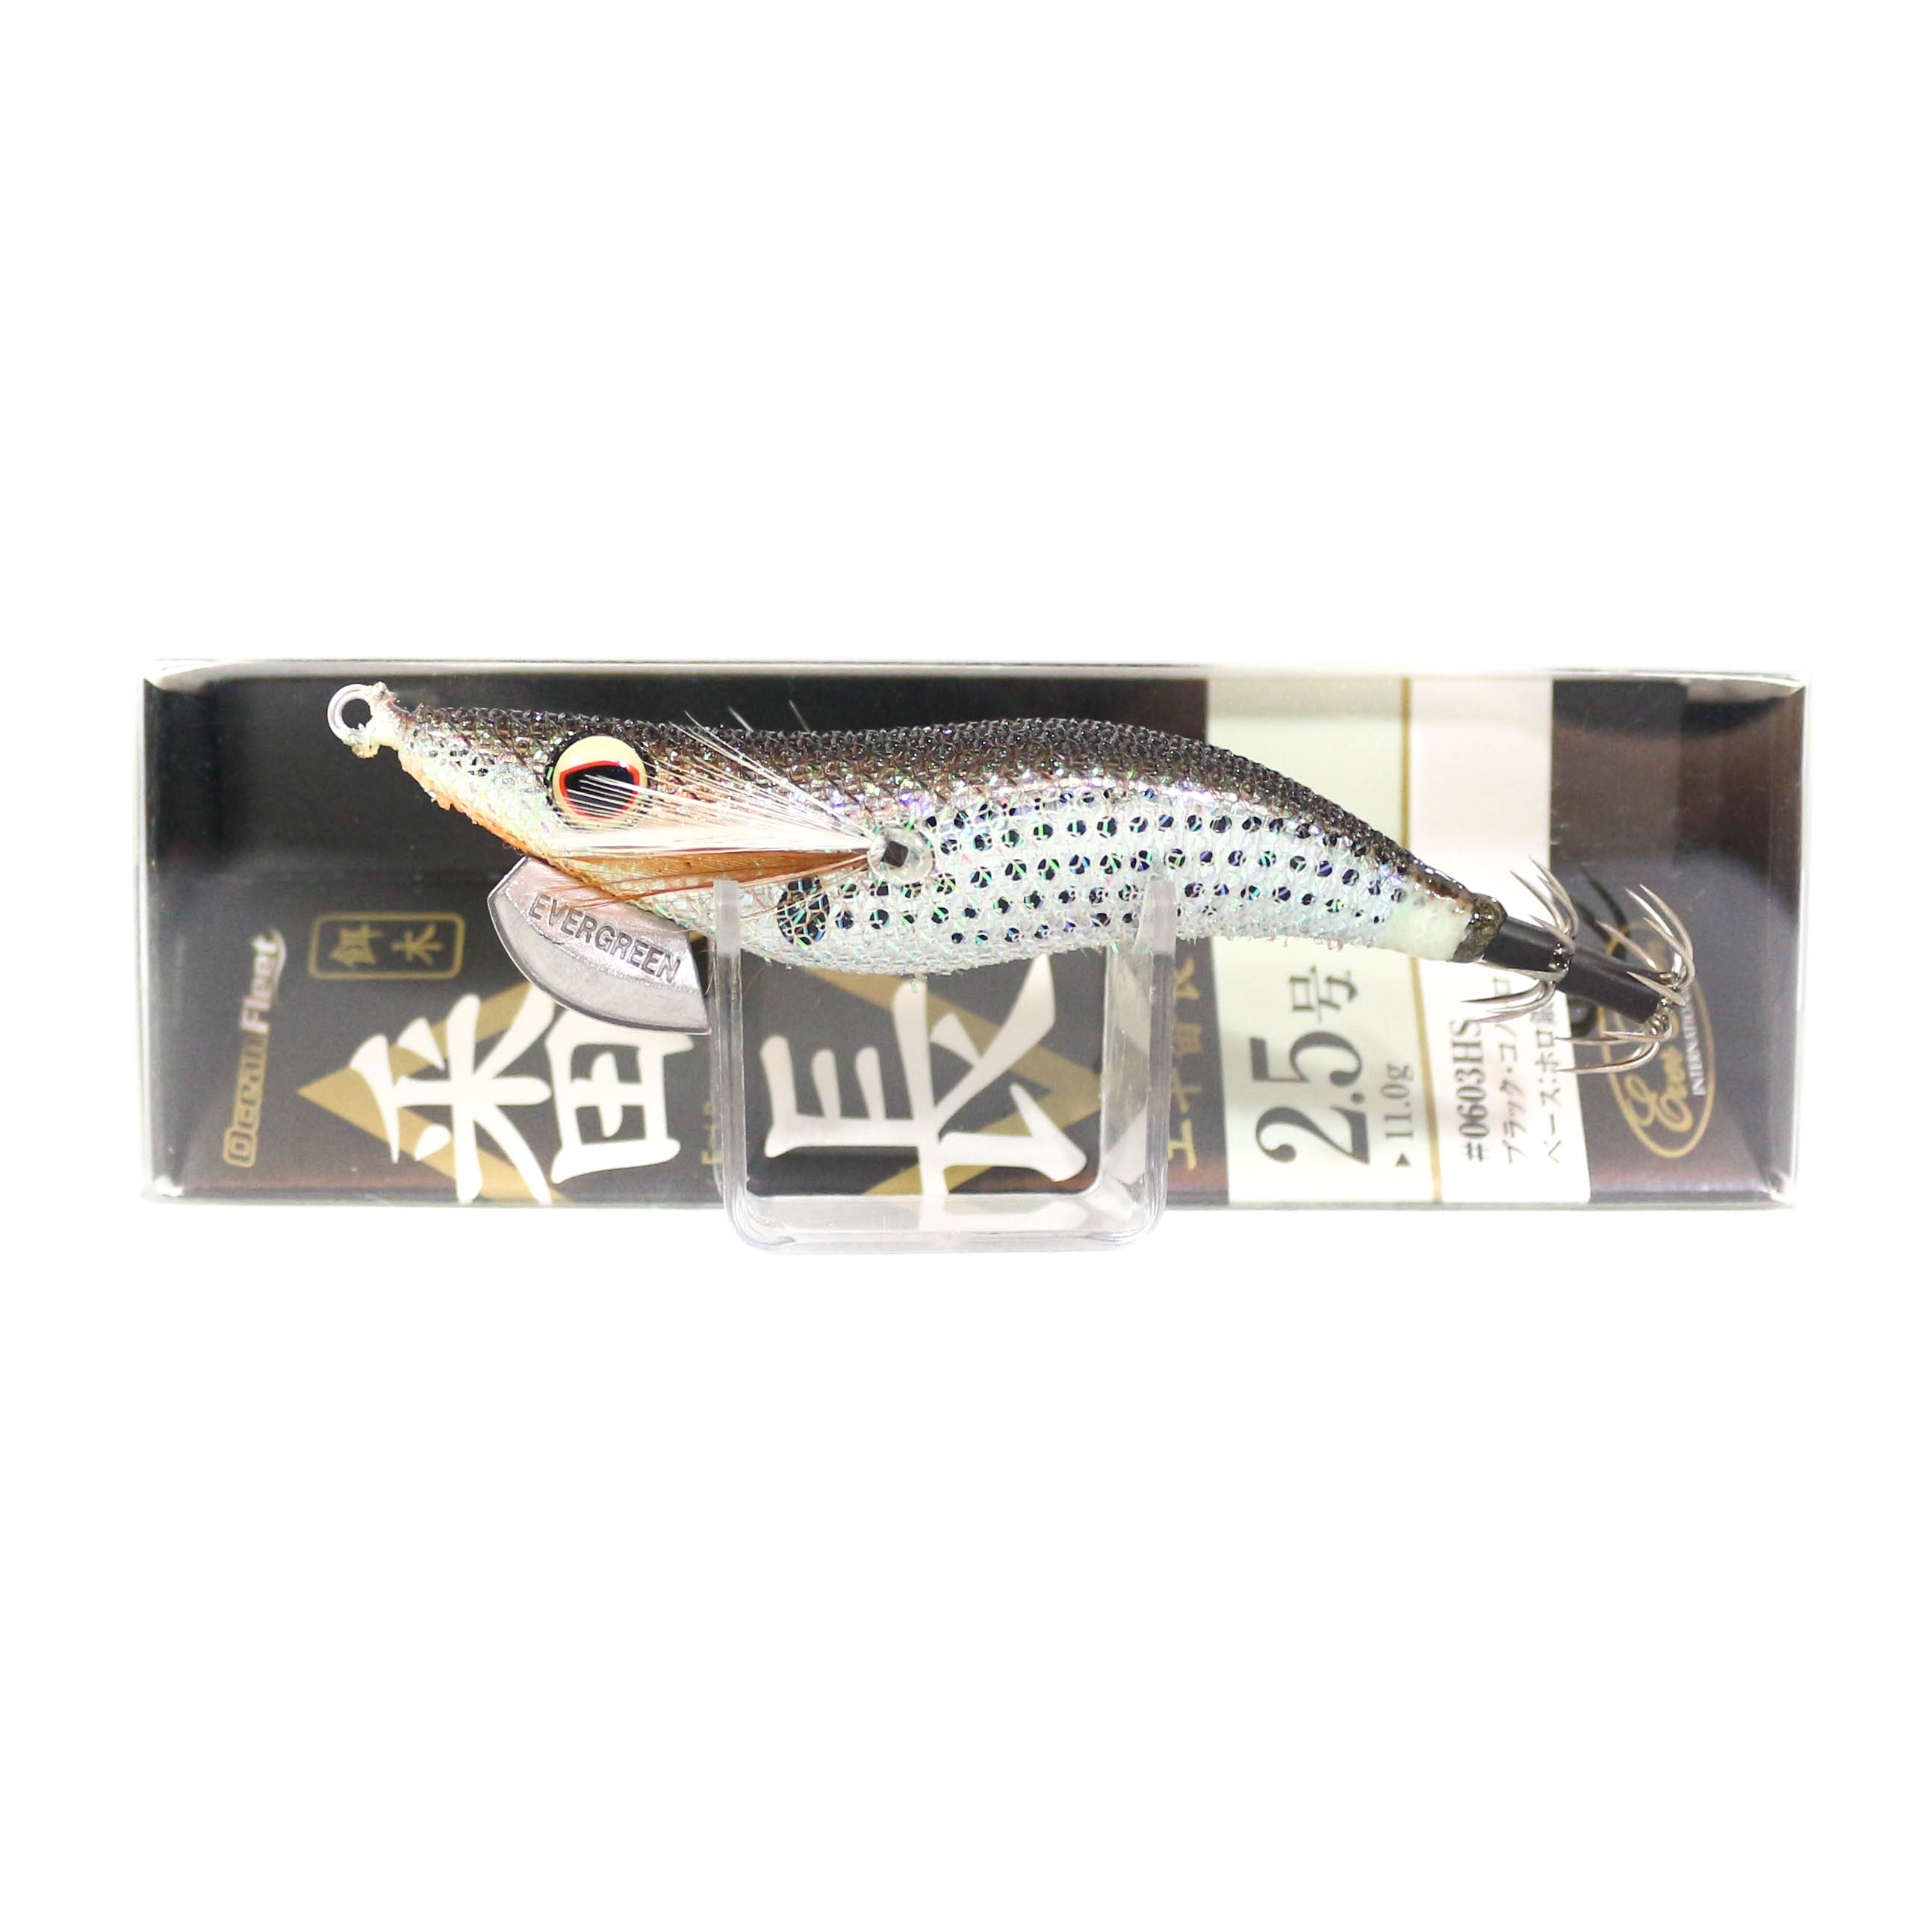 Evergreen Ocean Fleet Custom Squid Jig Lure 2.5 0603HS (9445)